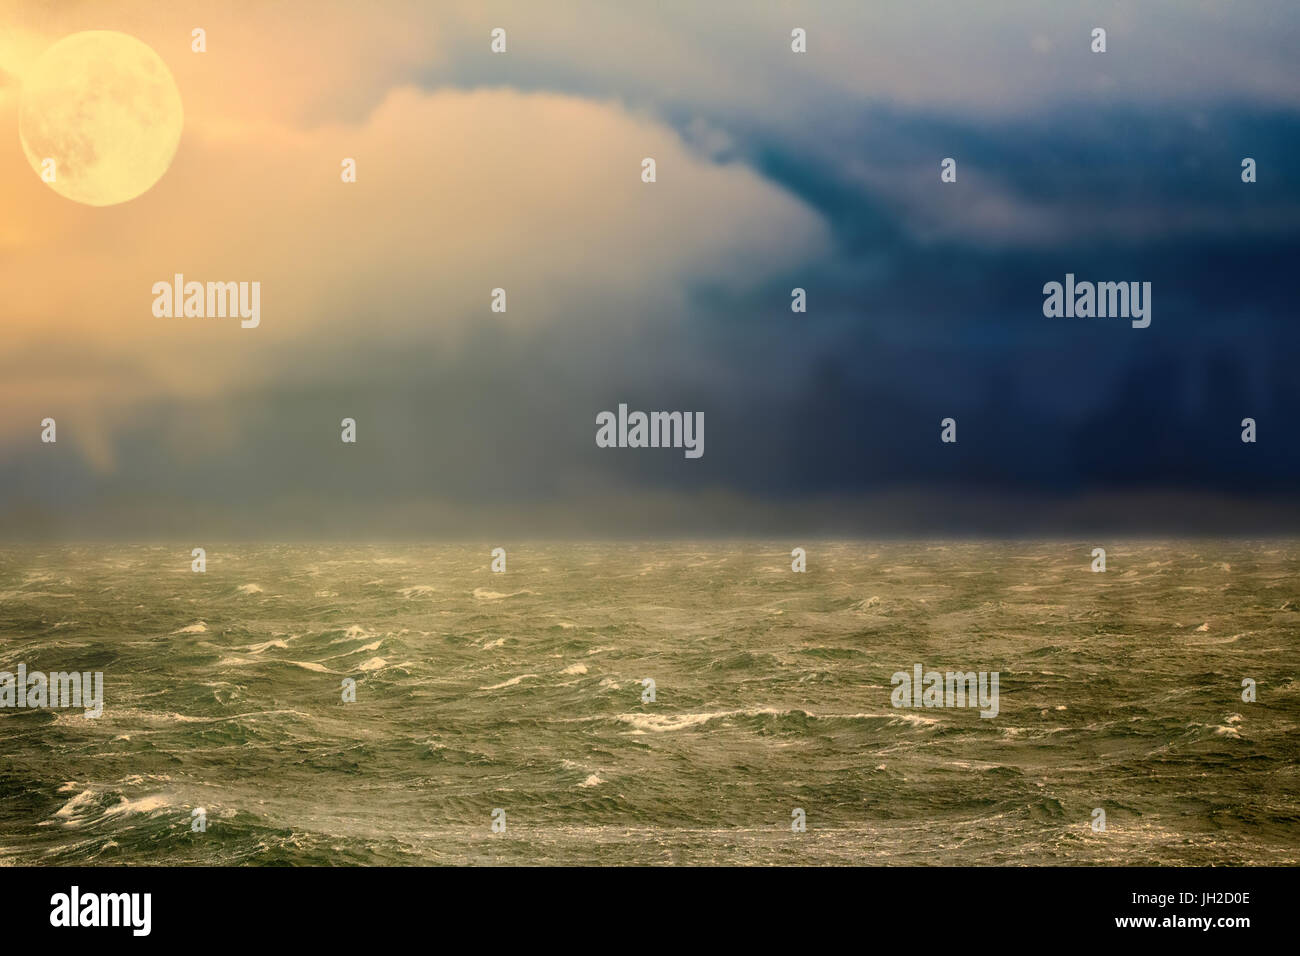 Global warming. Arctic ocean from height of bird flight - free of ice. moonrise, storm, are specific foam streaks - Stock Image